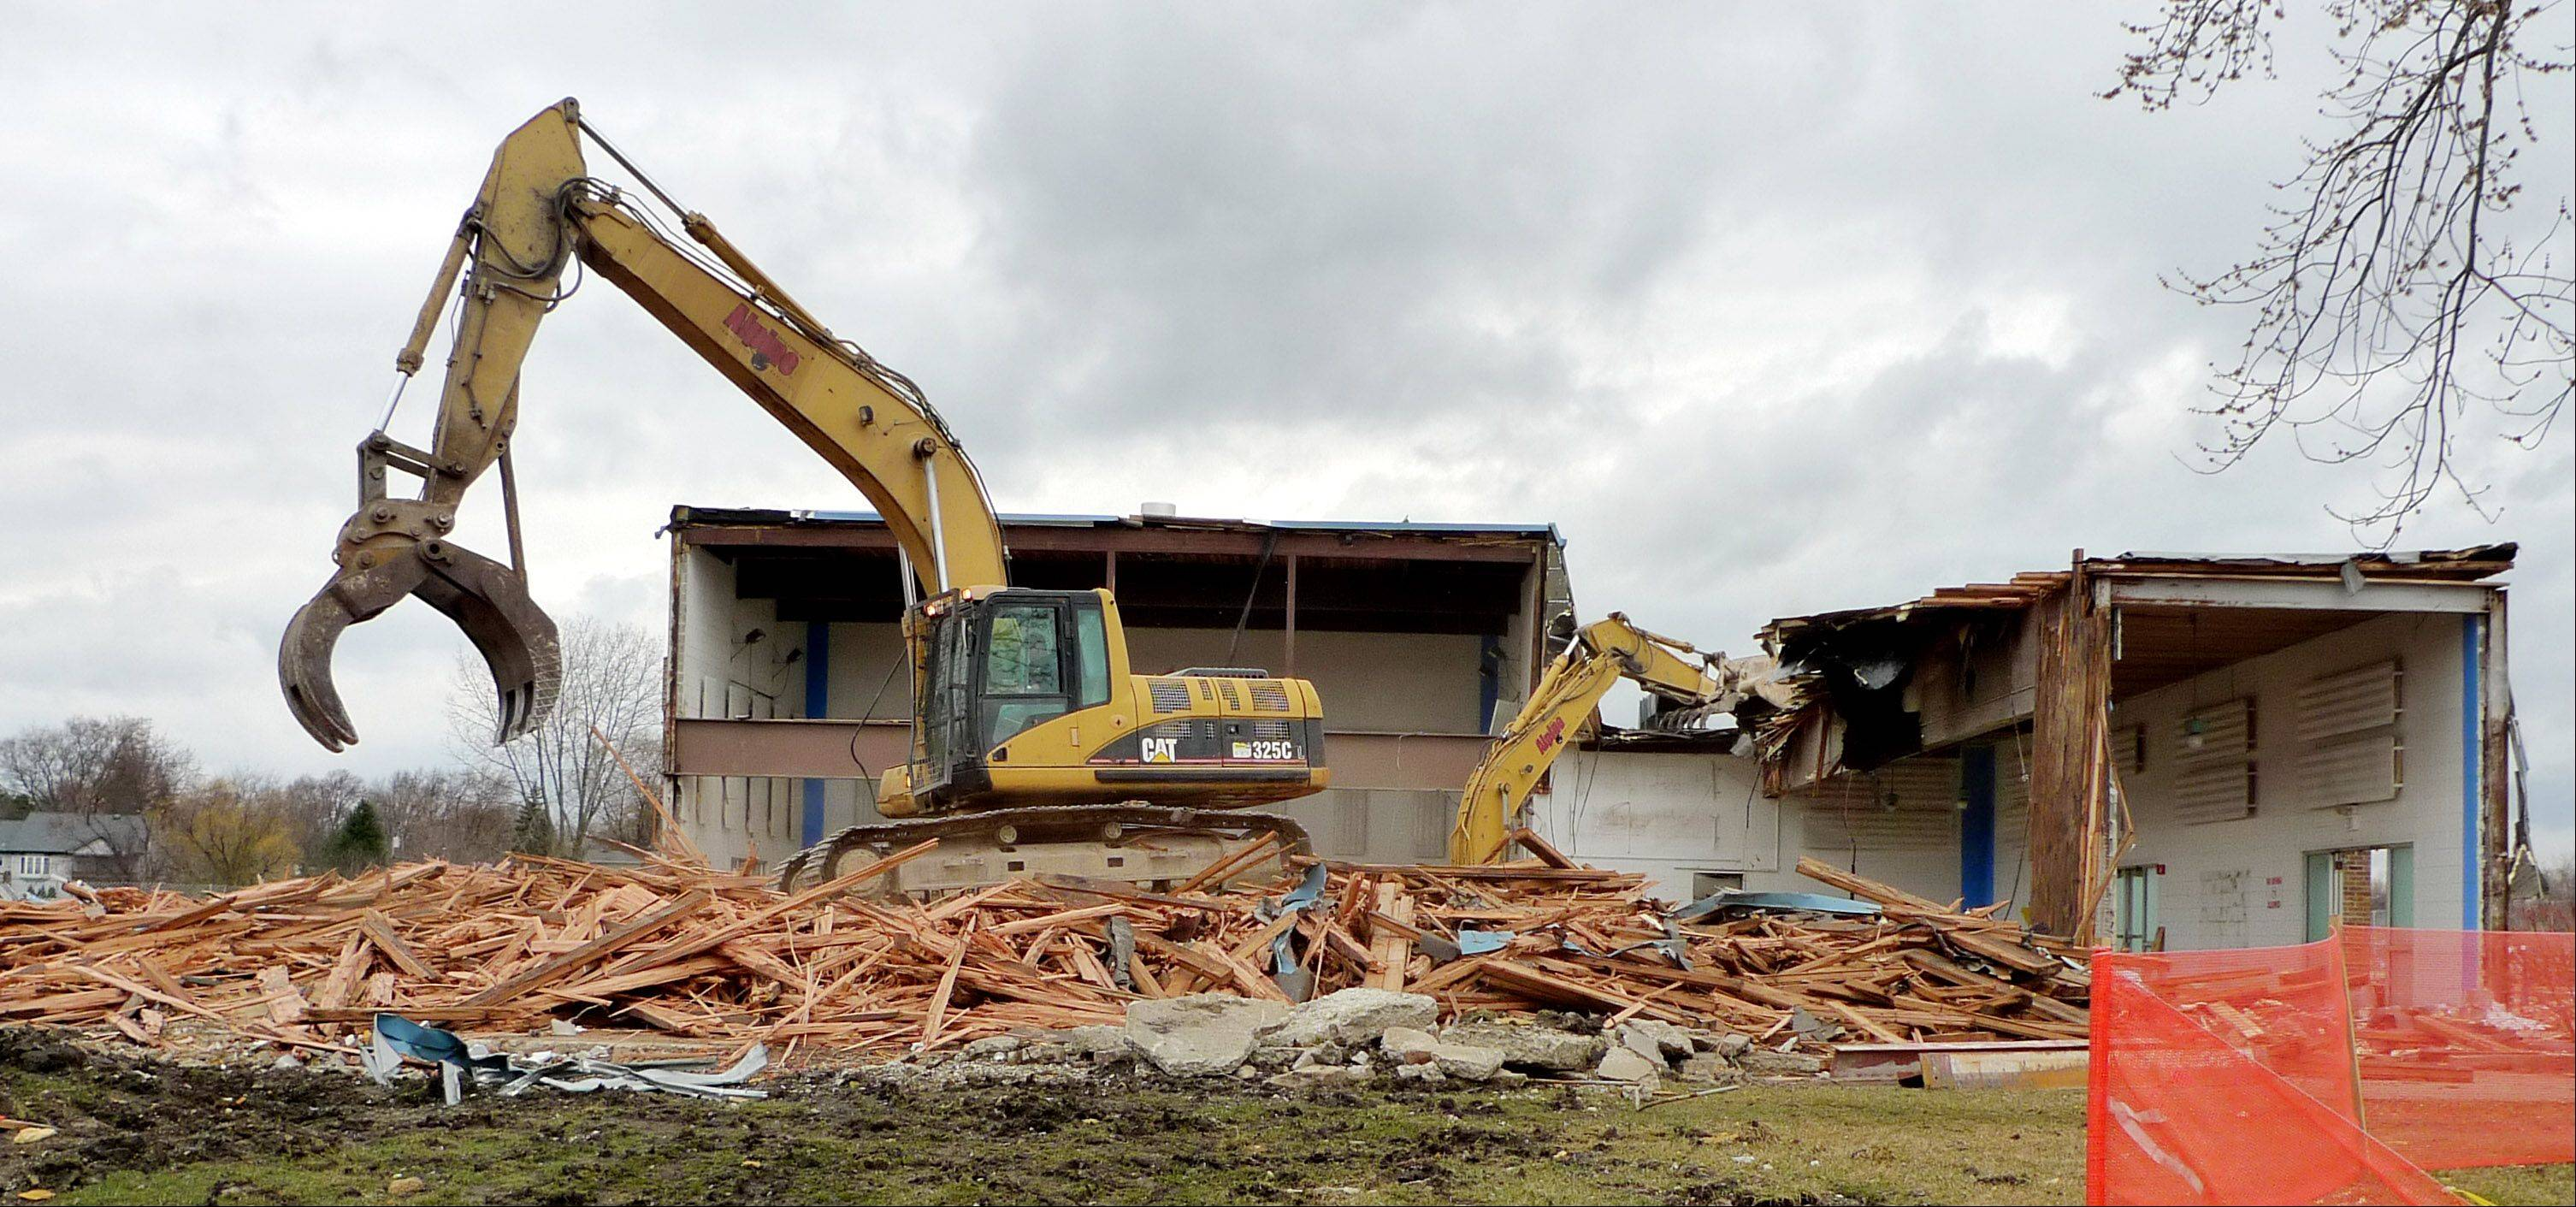 The Aldrin Community Center in Carol Stream's Armstrong Park is being torn down to make way for a $5 million county flood mitigation project.